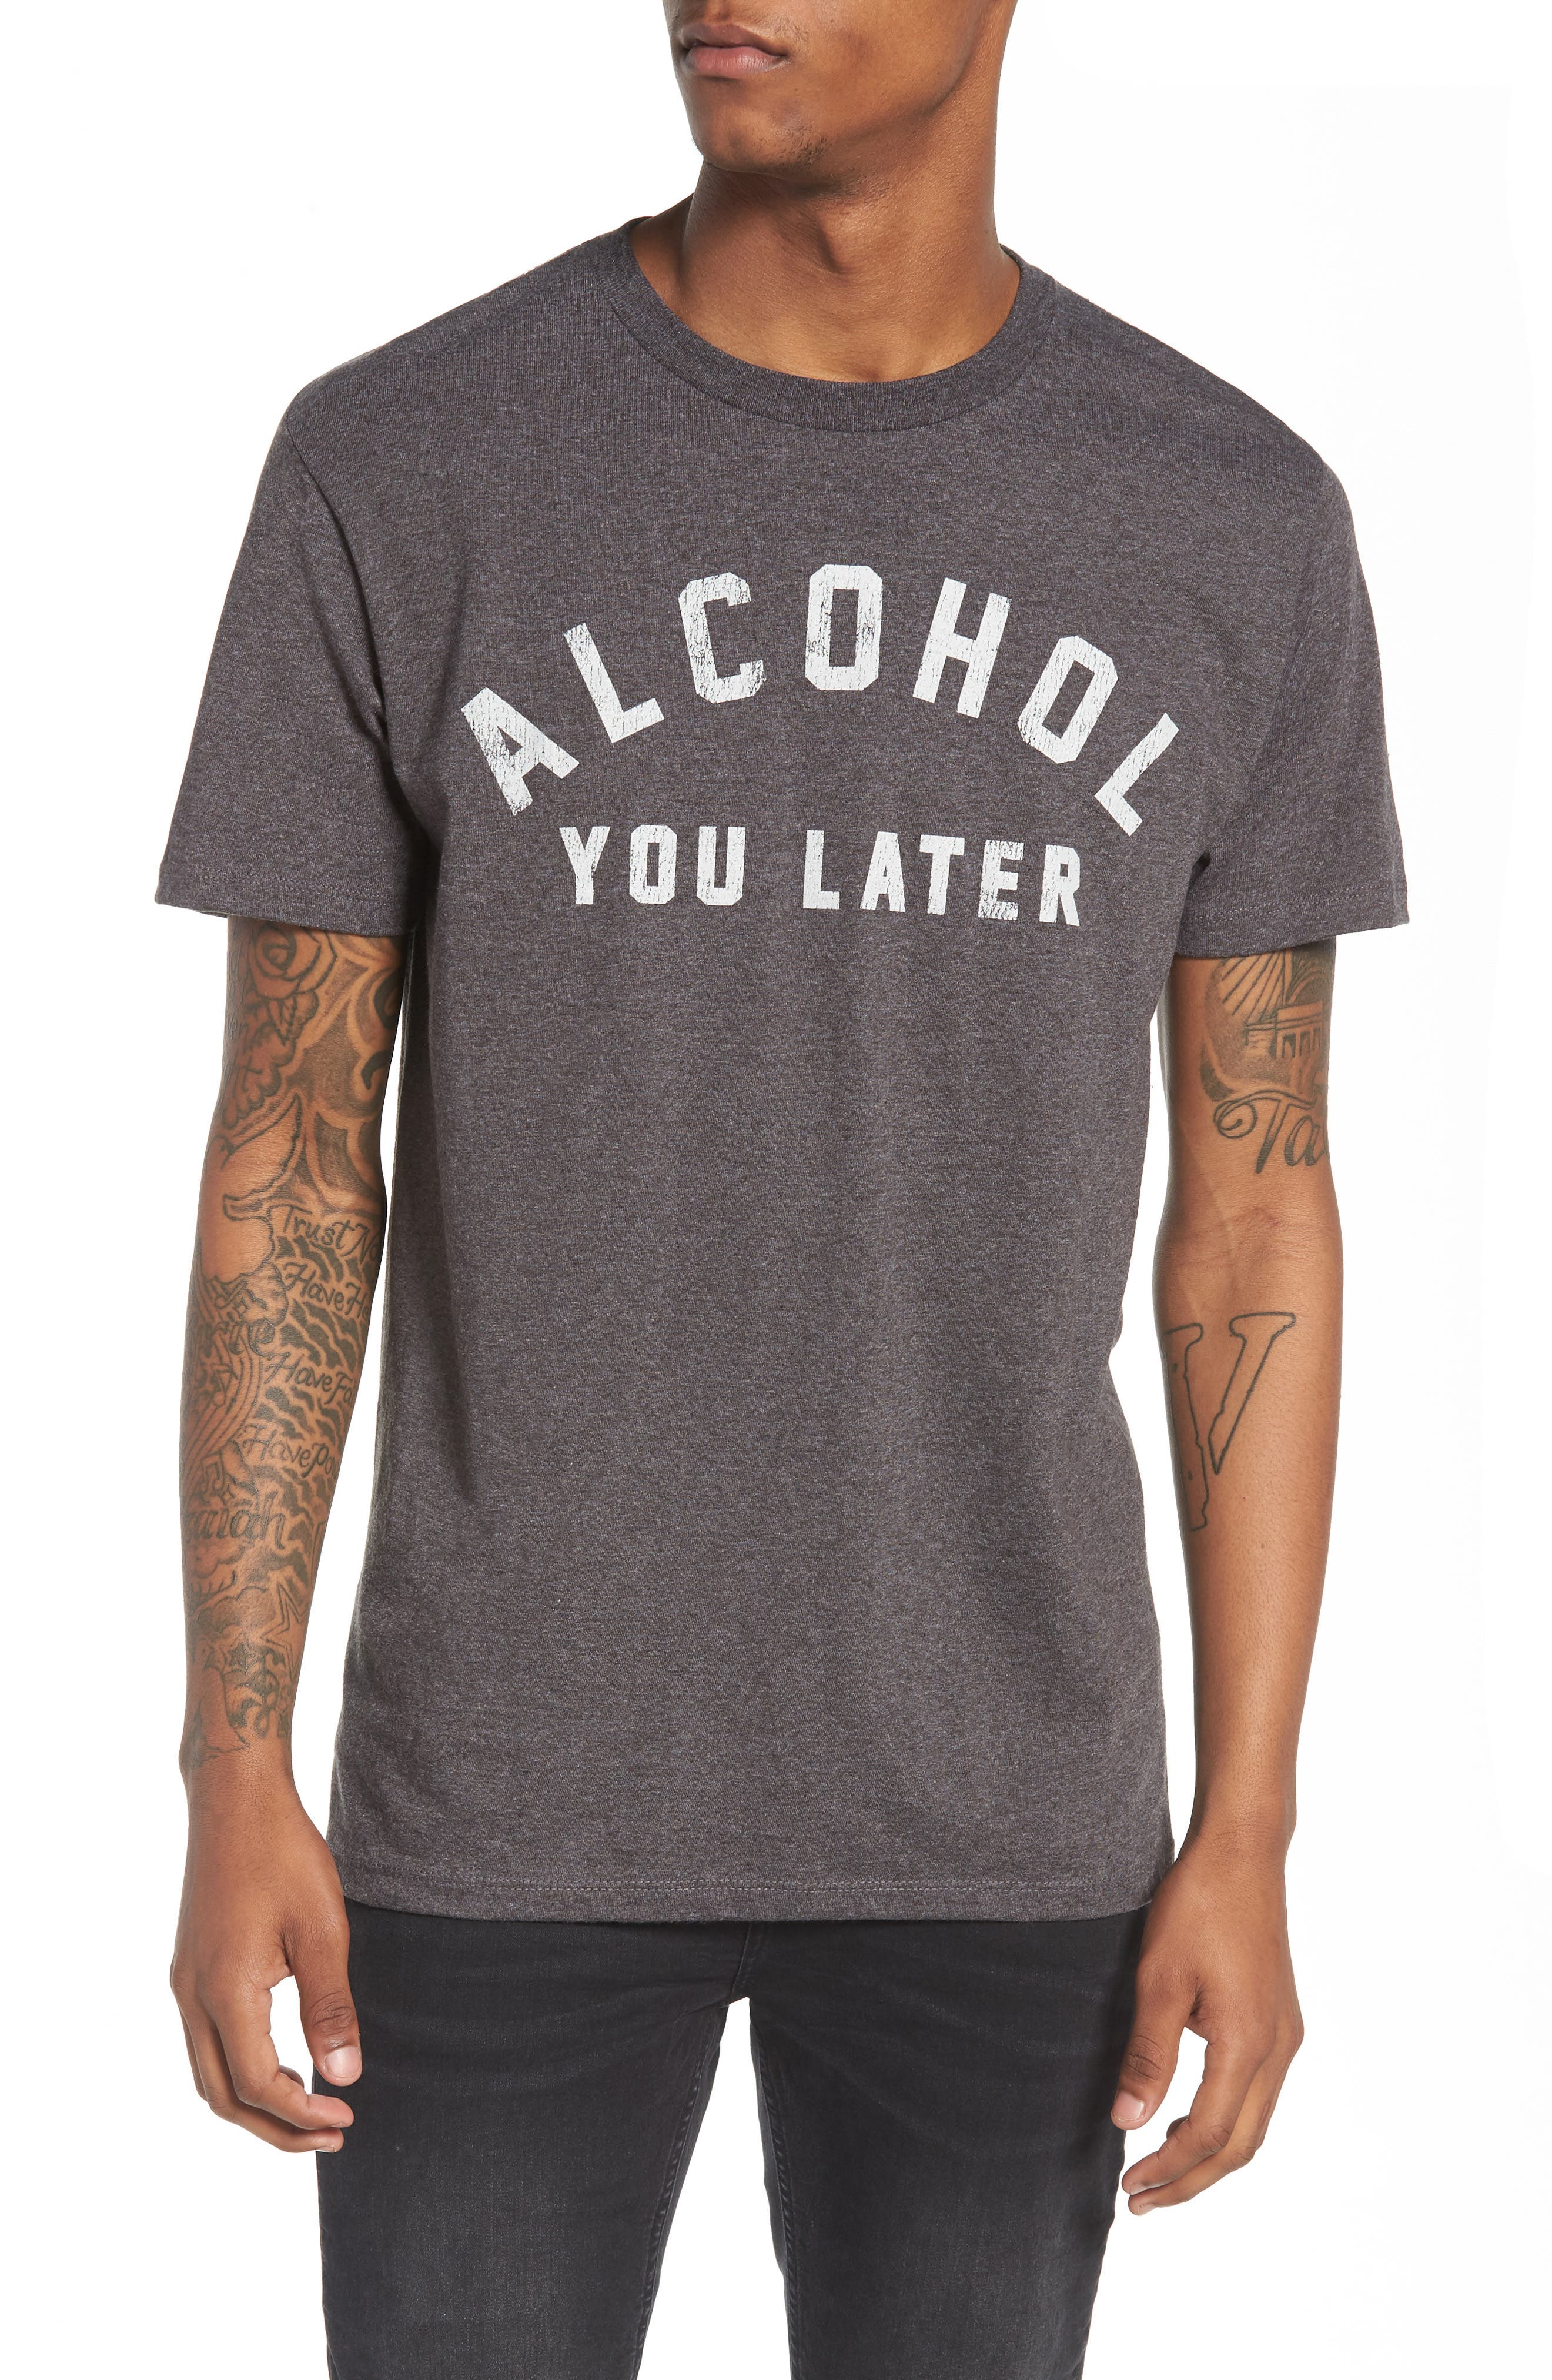 Alcohol You Later T-Shirt,                         Main,                         color, Grey Charcoal Heather Alcohol